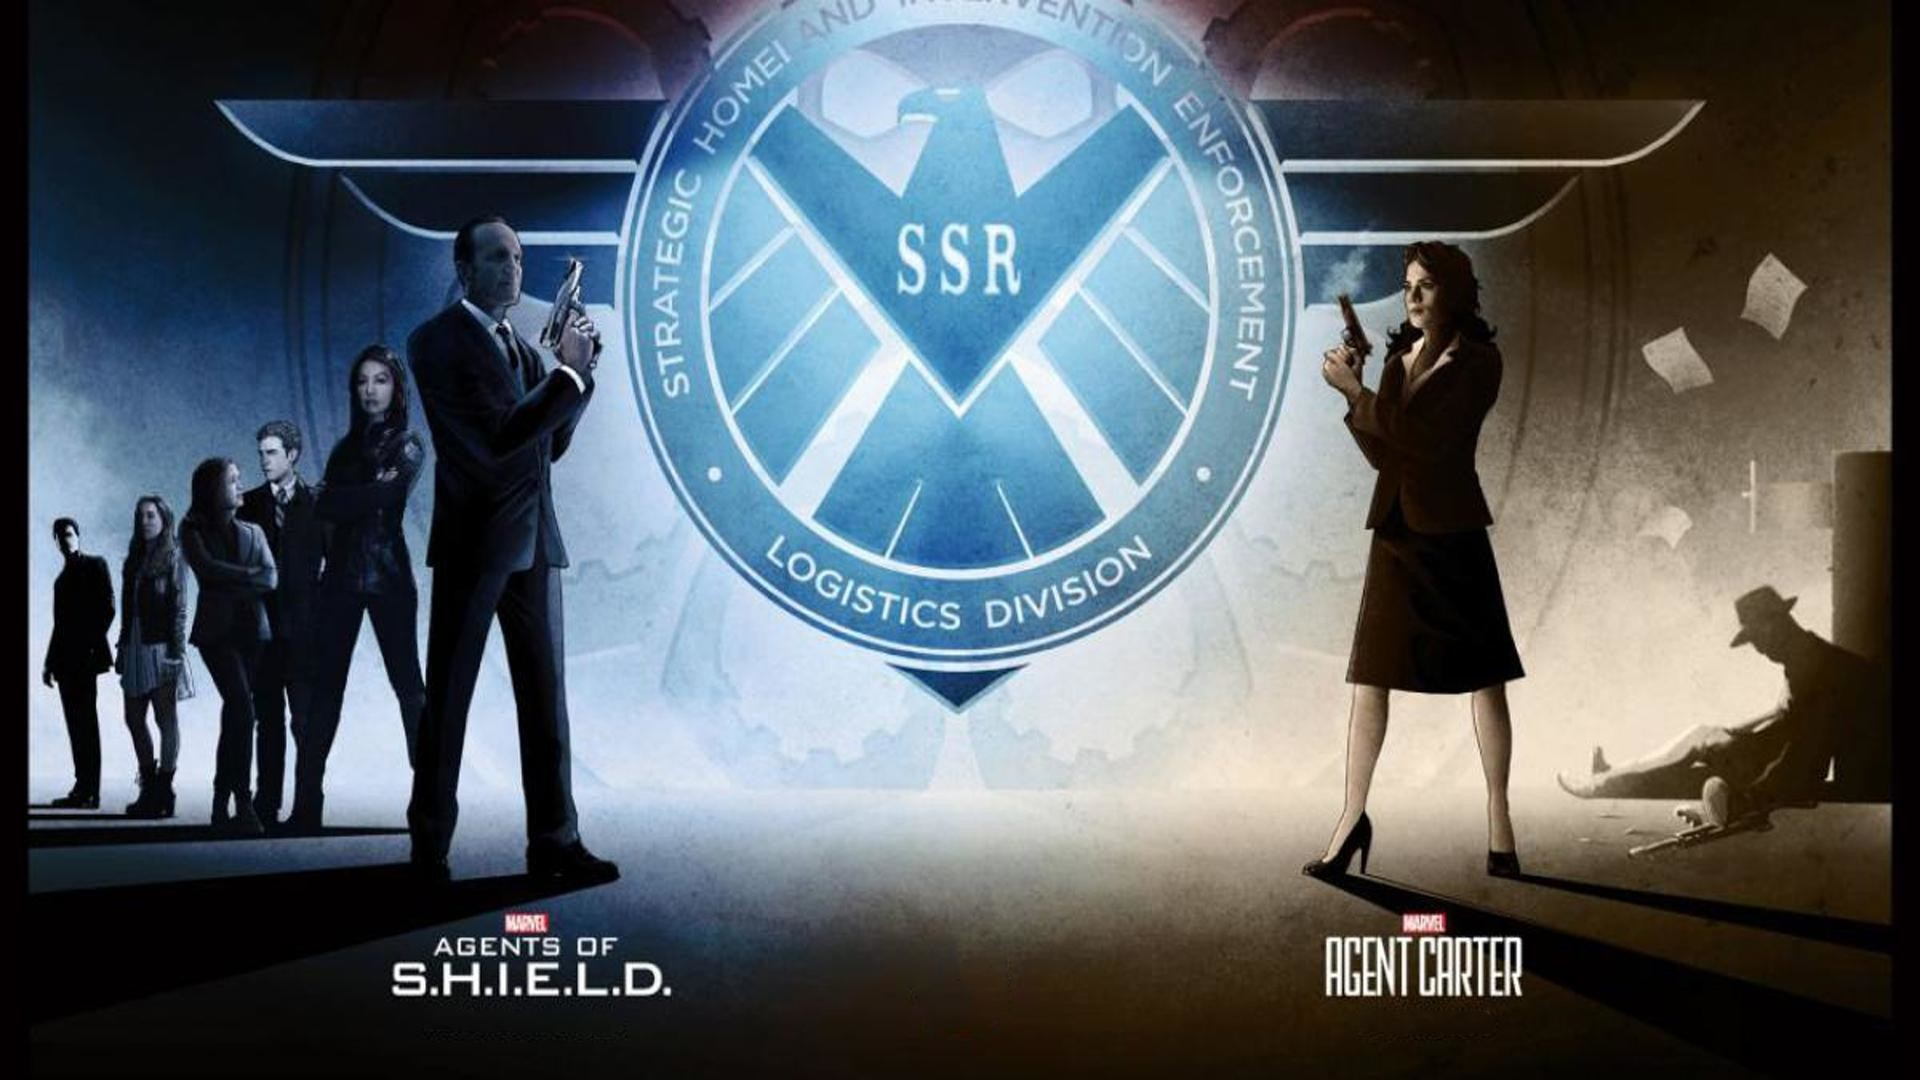 I found an image in one of the news pieces about Agents of S.H.I.E.L.D and  Agent Carter getting renewed and decided to make it a wallpaper.